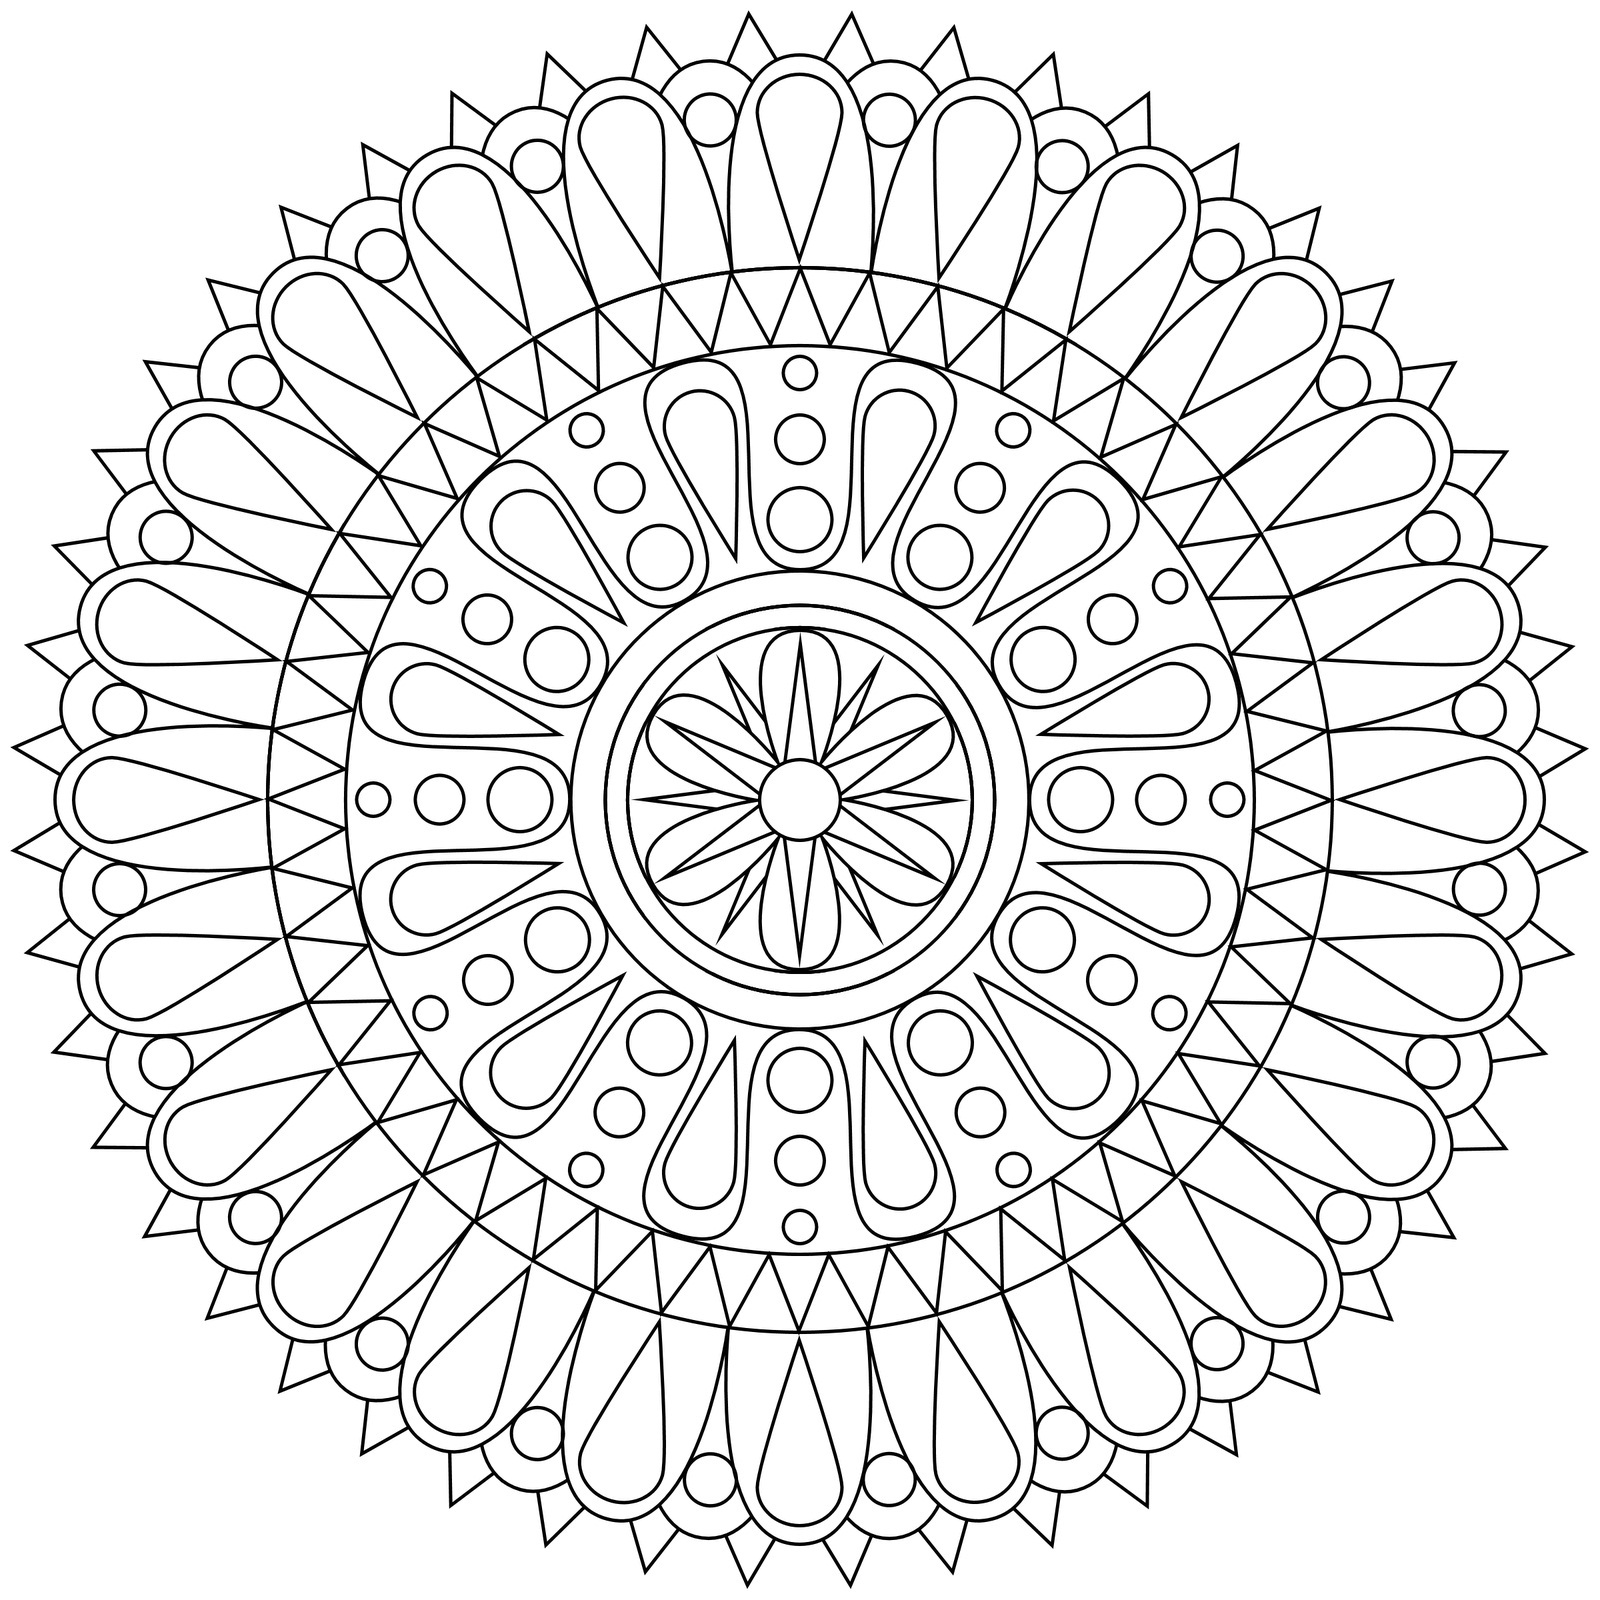 free coloring pages of mandalas - photo#26